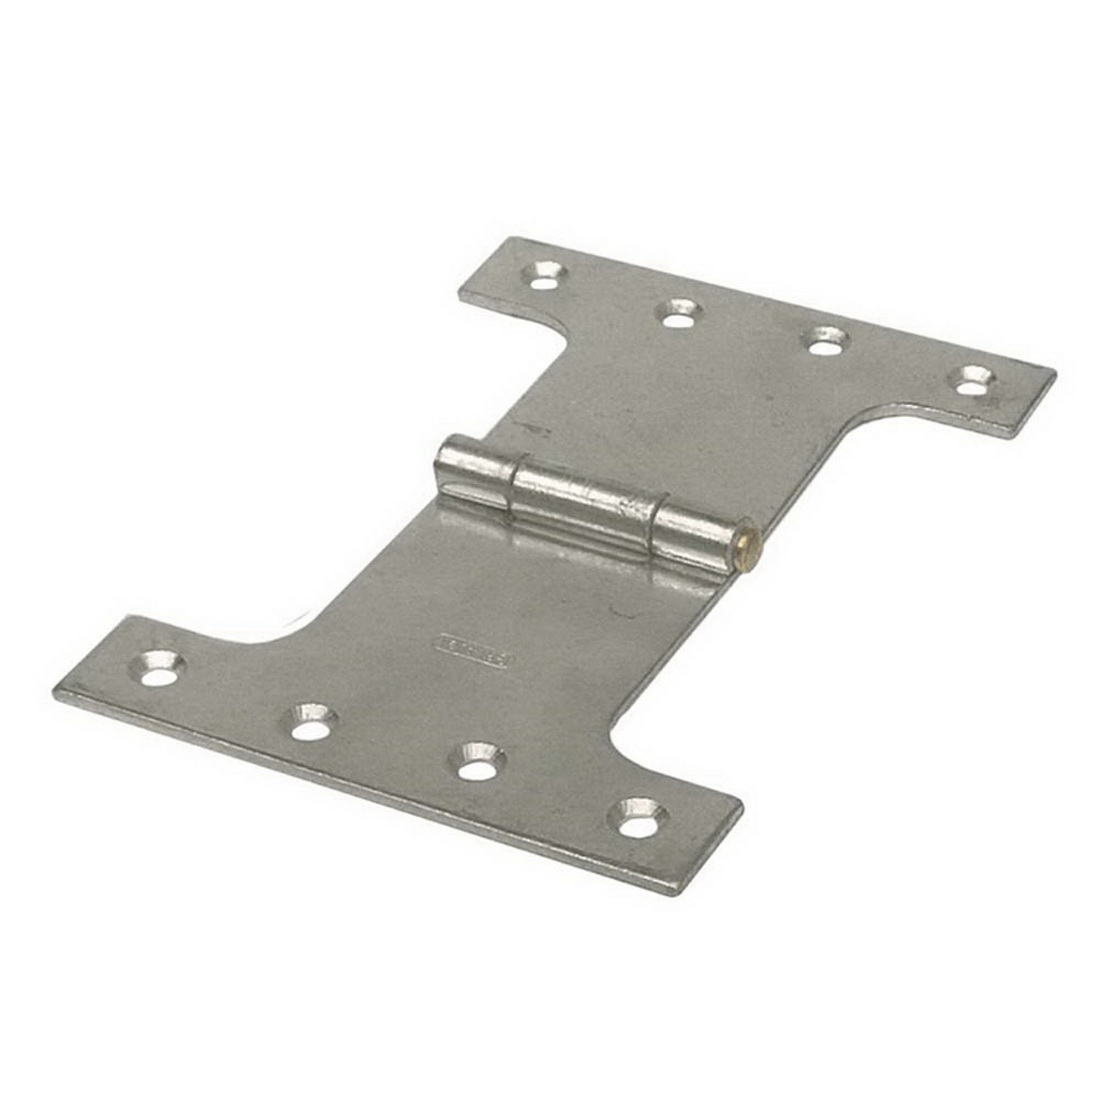 127mm Fixed Pin Wide Throw Parliament Butt Hinge 304 Stainless Steel